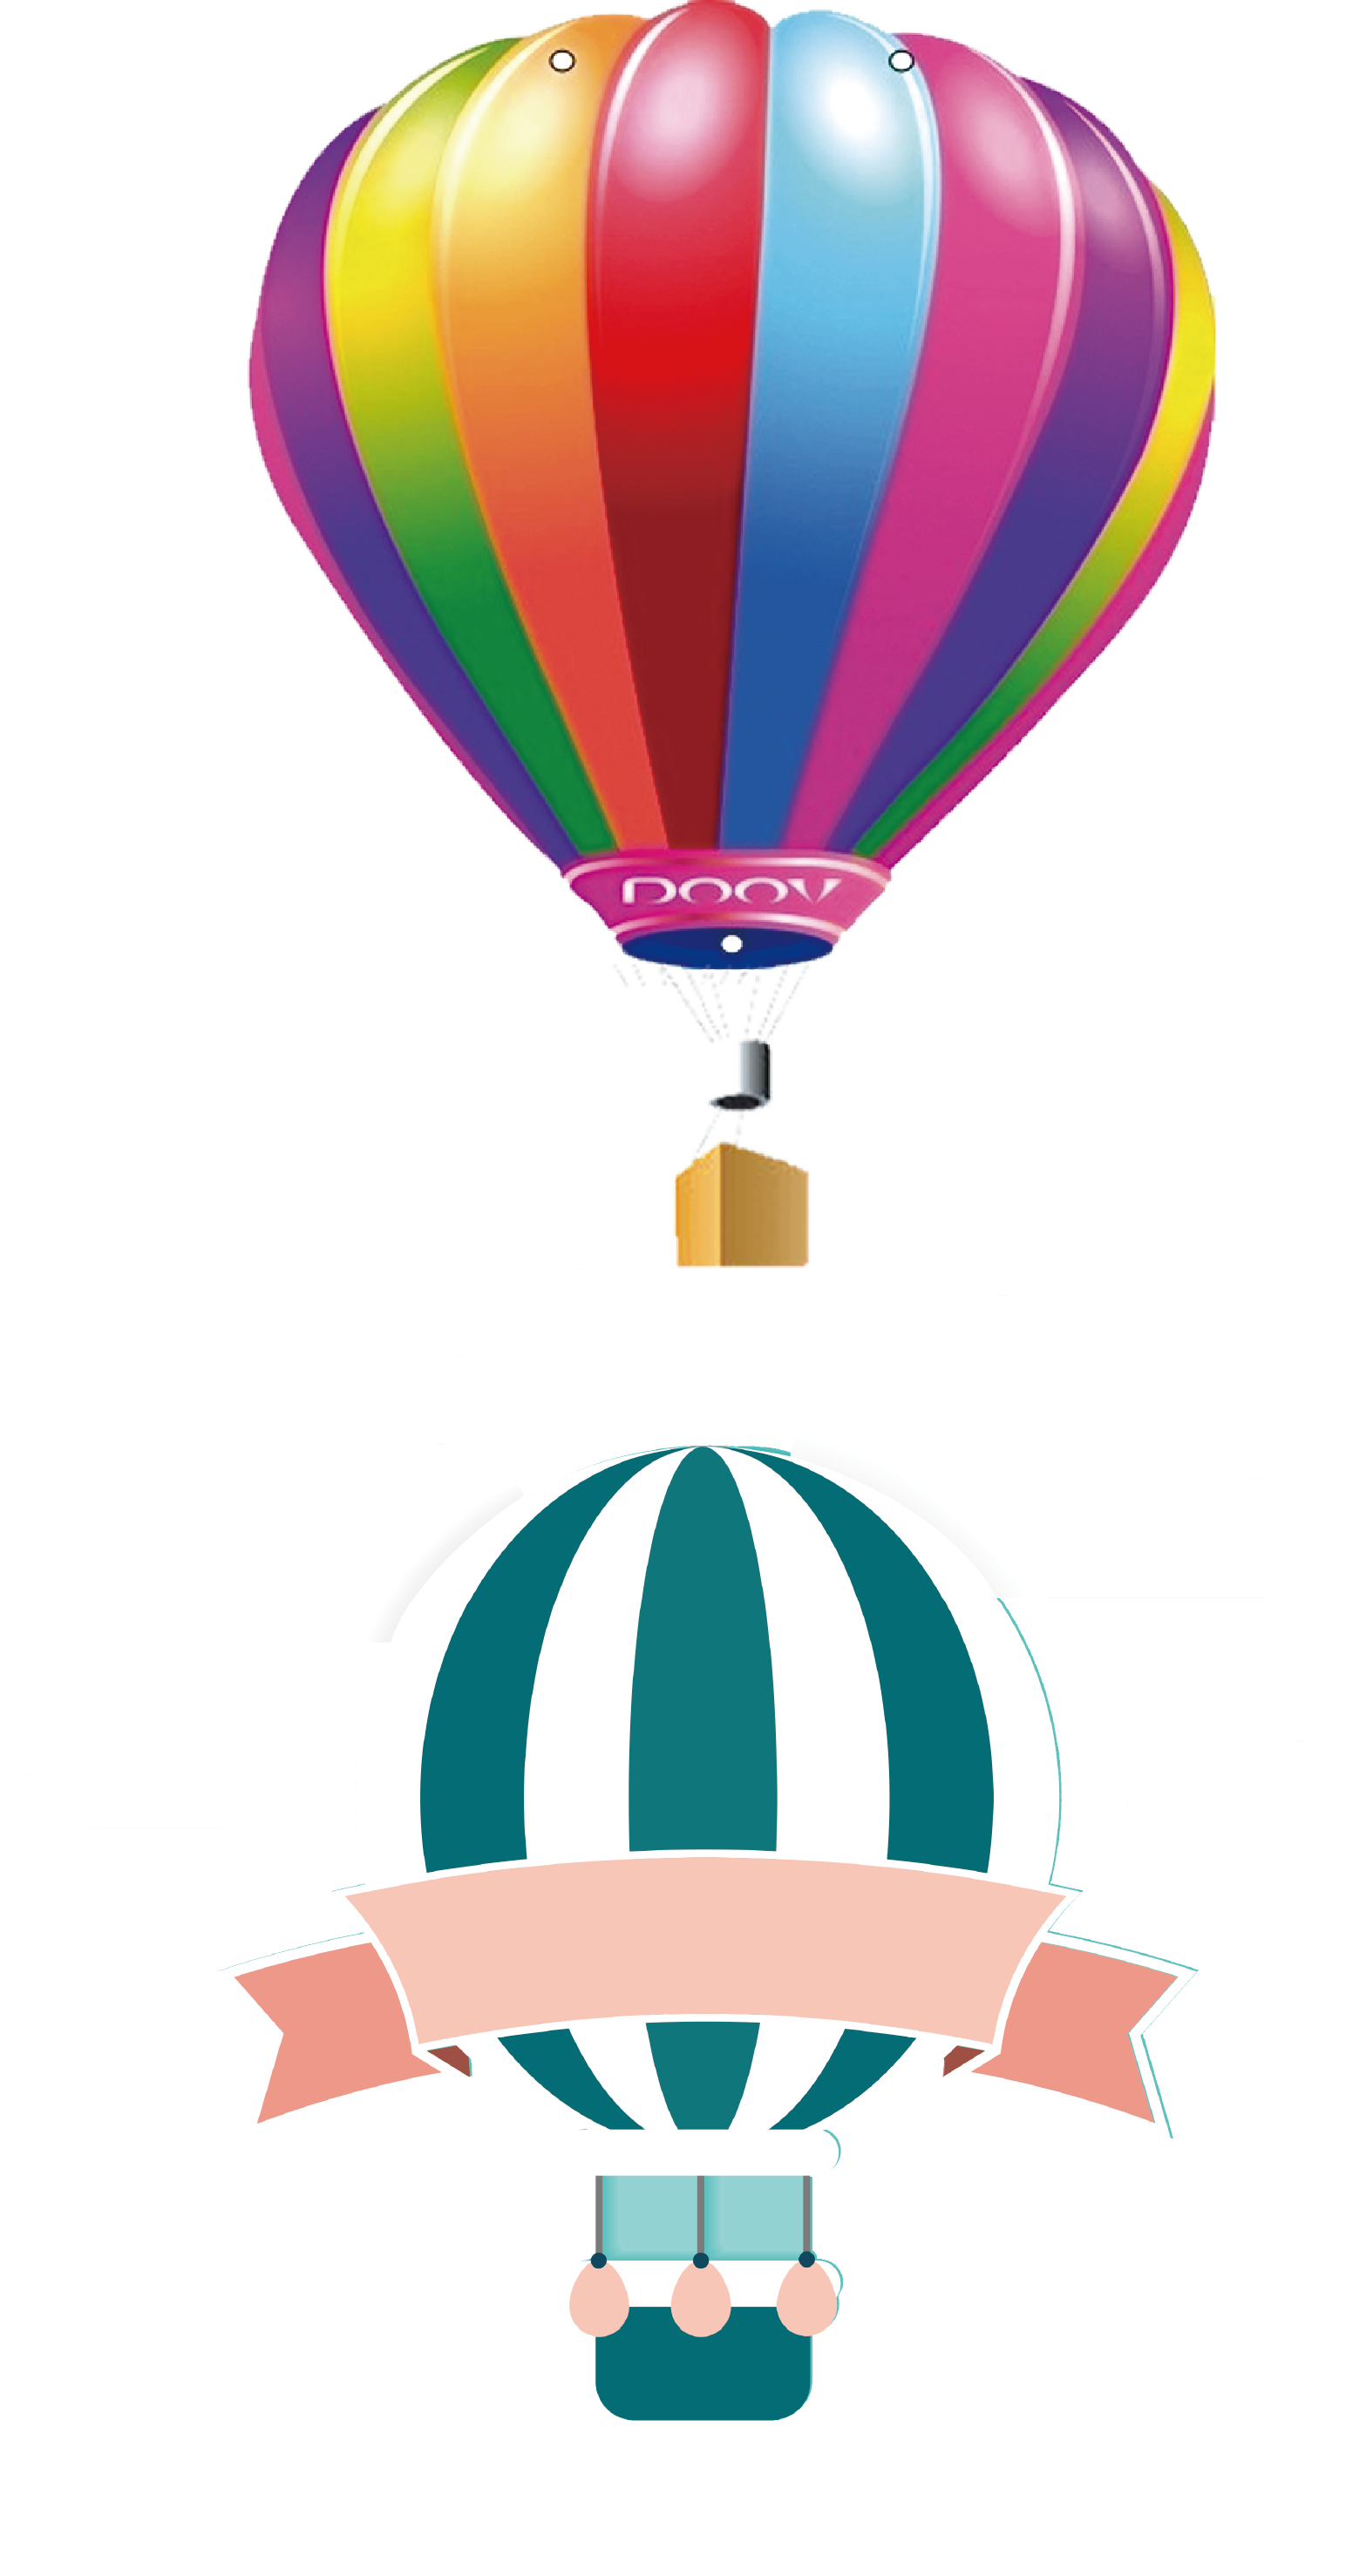 Balloon basket illustration the. Parachute clipart air ballon